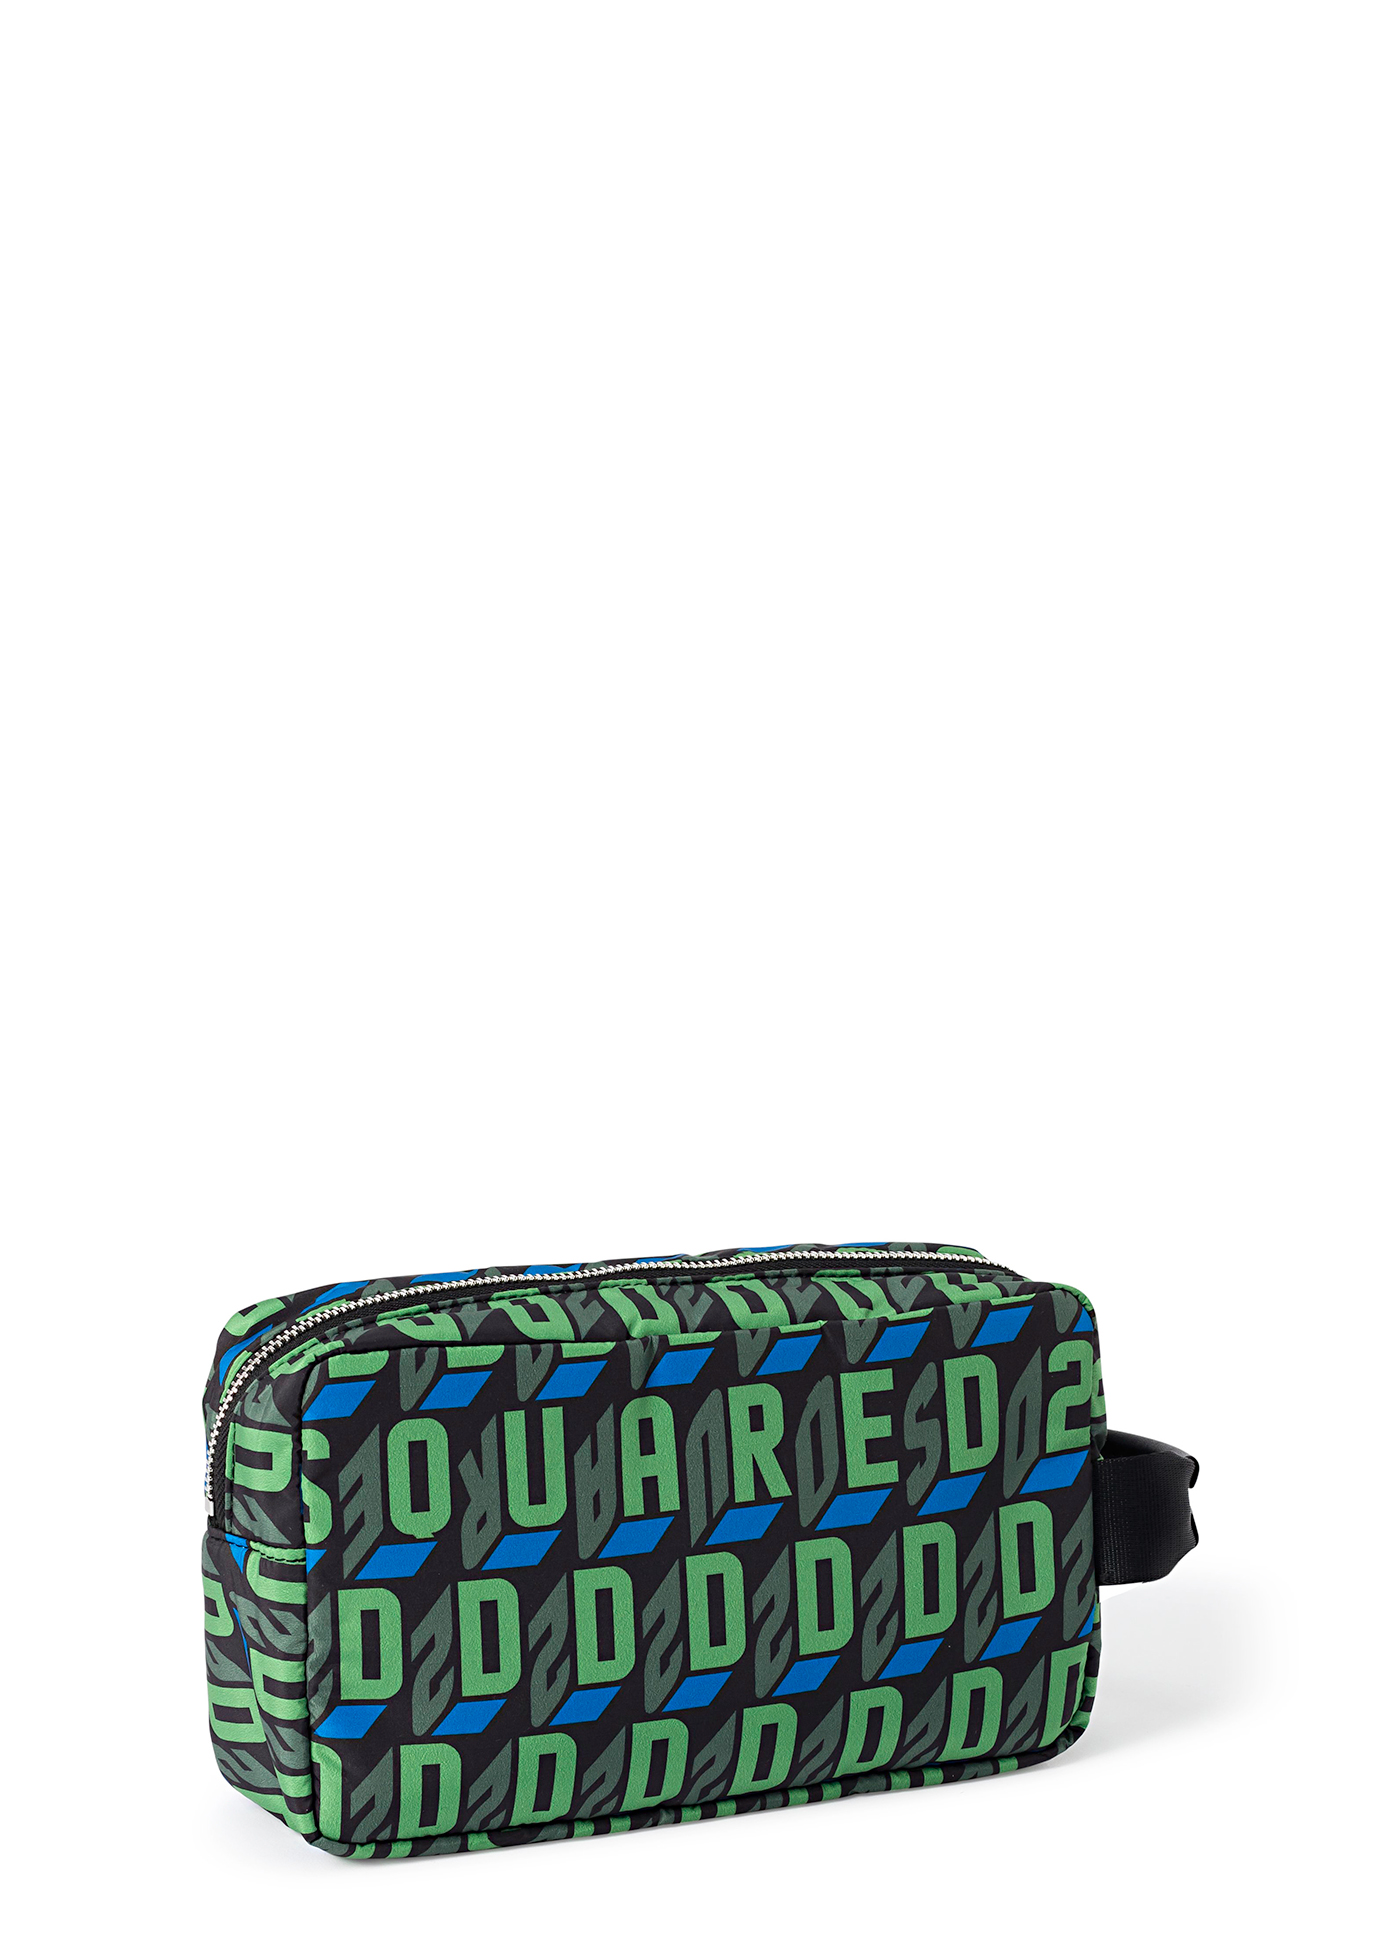 D2 MONOGRAM BEAUTY - PRINTED PADDED image number 1